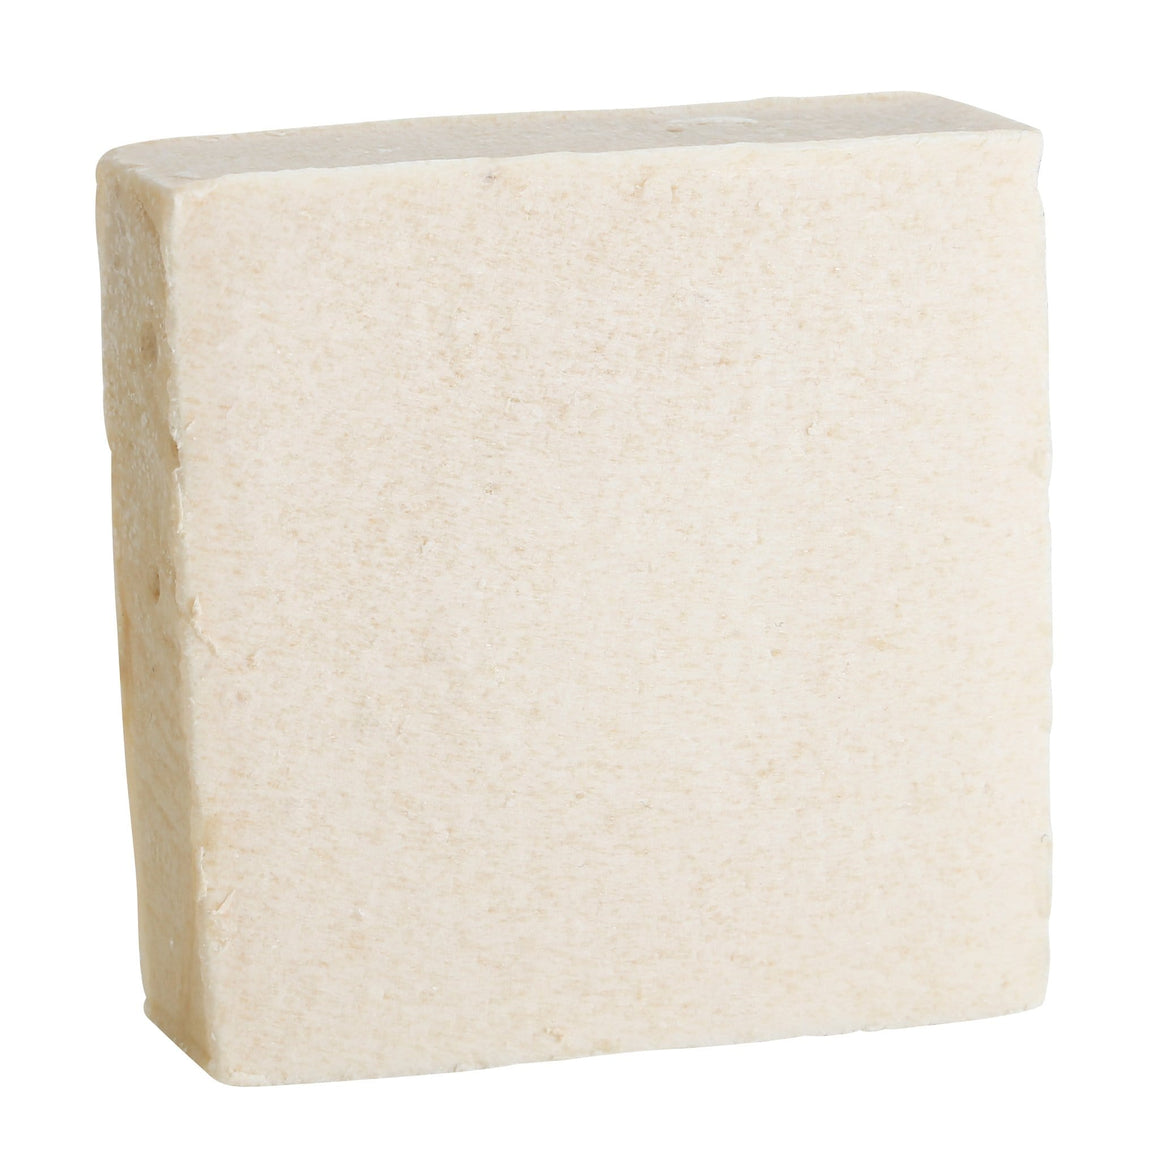 Vegan Coconut Milky Natural Soap